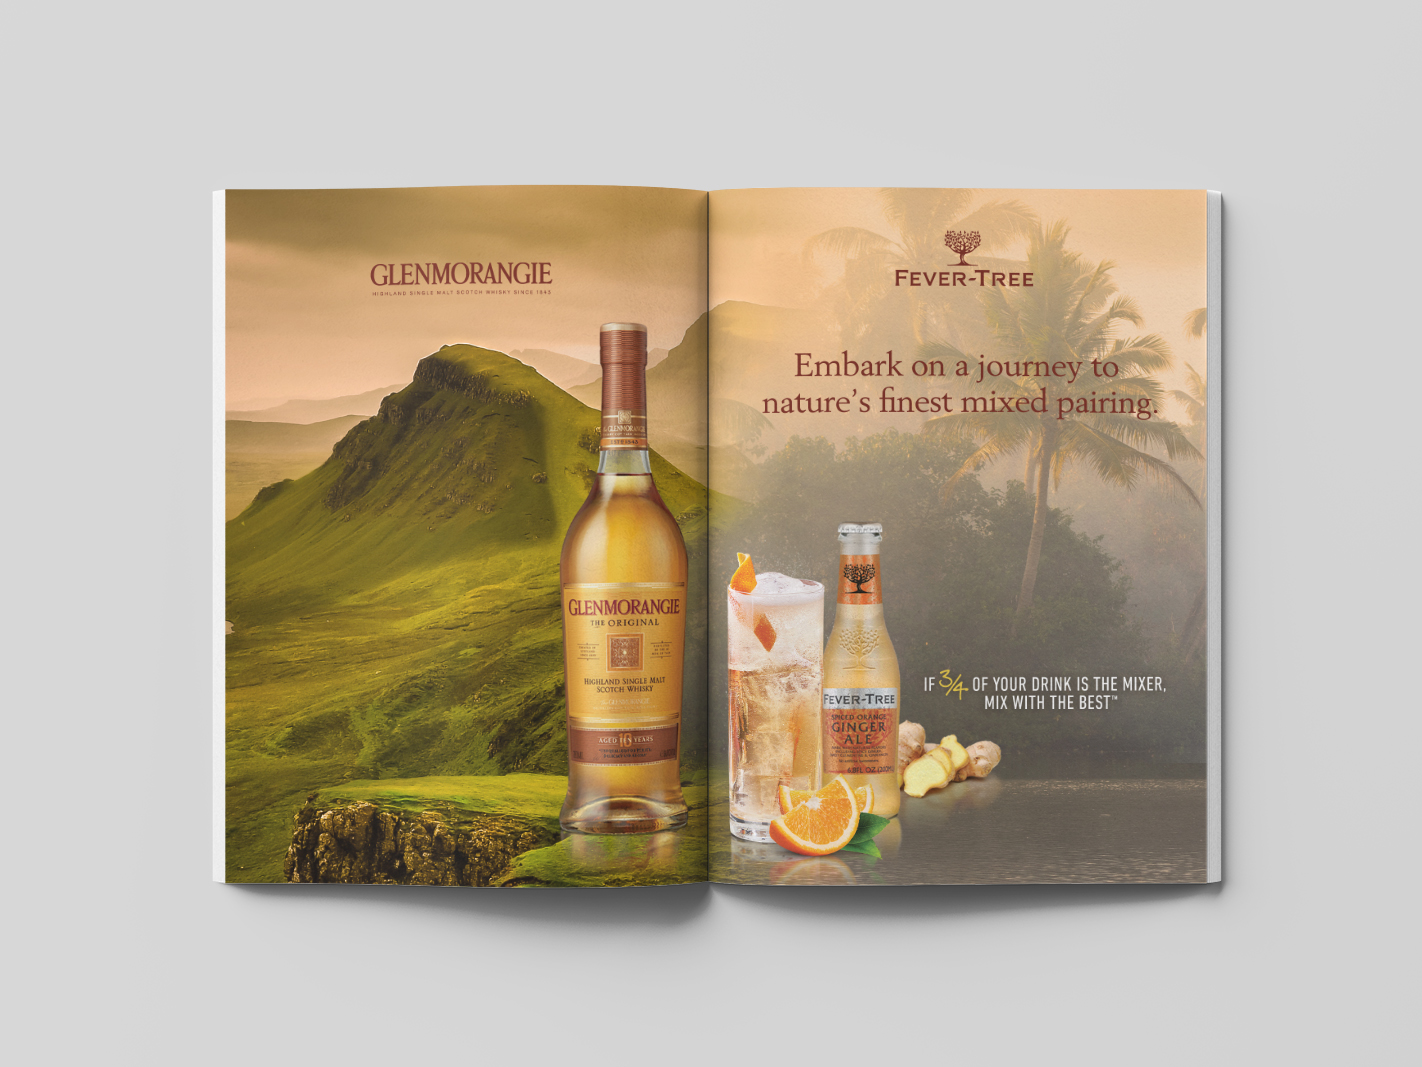 Glenmorangie & Fevertree Partnership